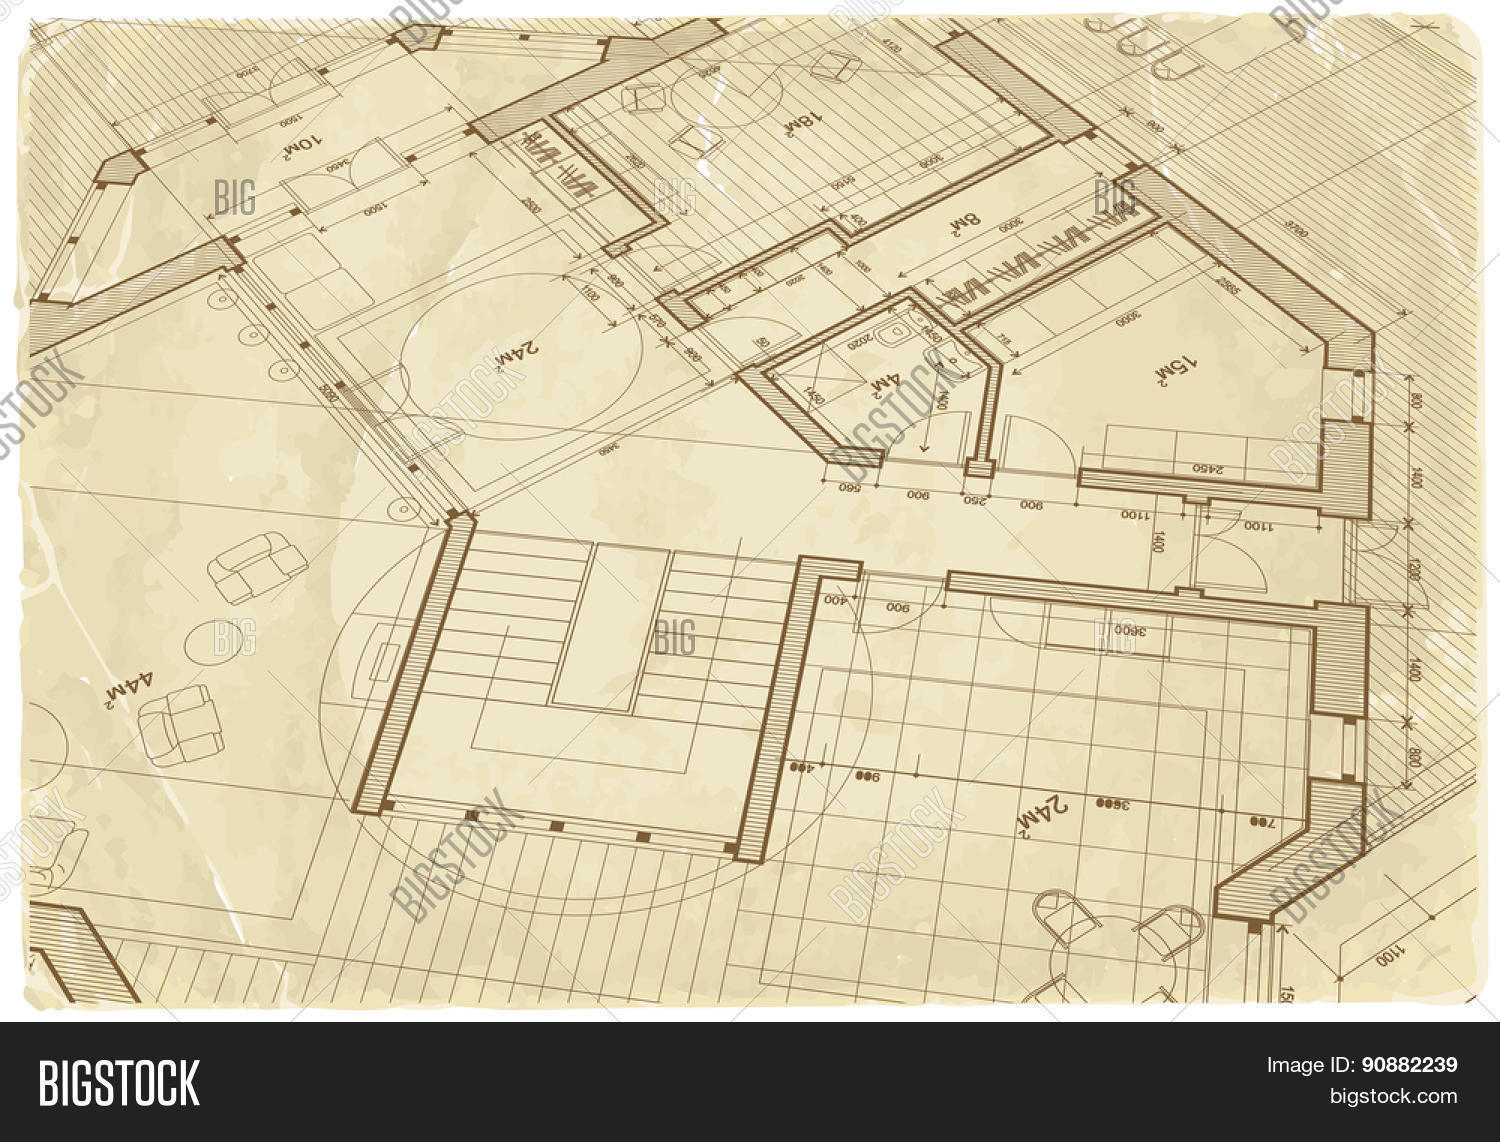 Architecture Drawing Paper architectural drawing house plan on the texture of the old sheet